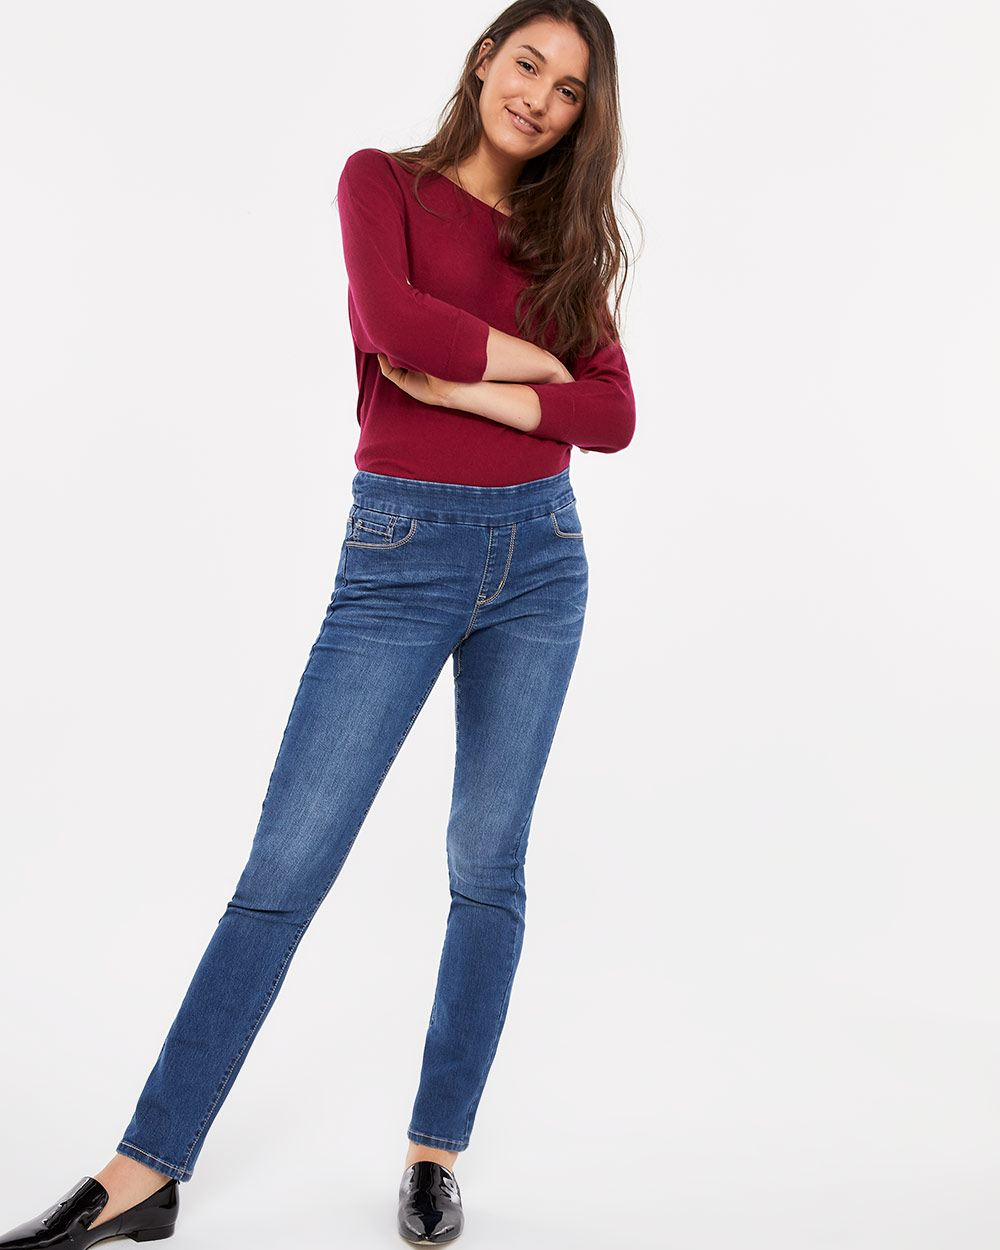 The Tall Original Comfort Straight Leg Medium Wash Jeans